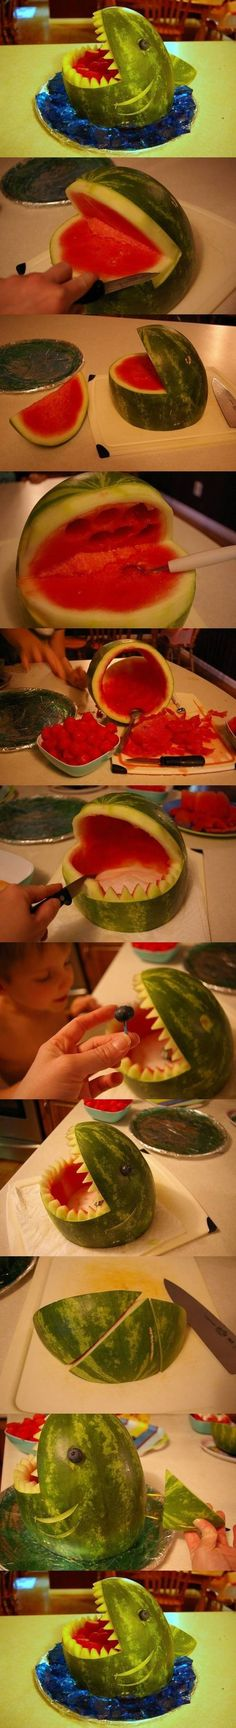 DIY Watermelon Shark Carving Internet Tutorial DIY Projects / UsefulDIY.com